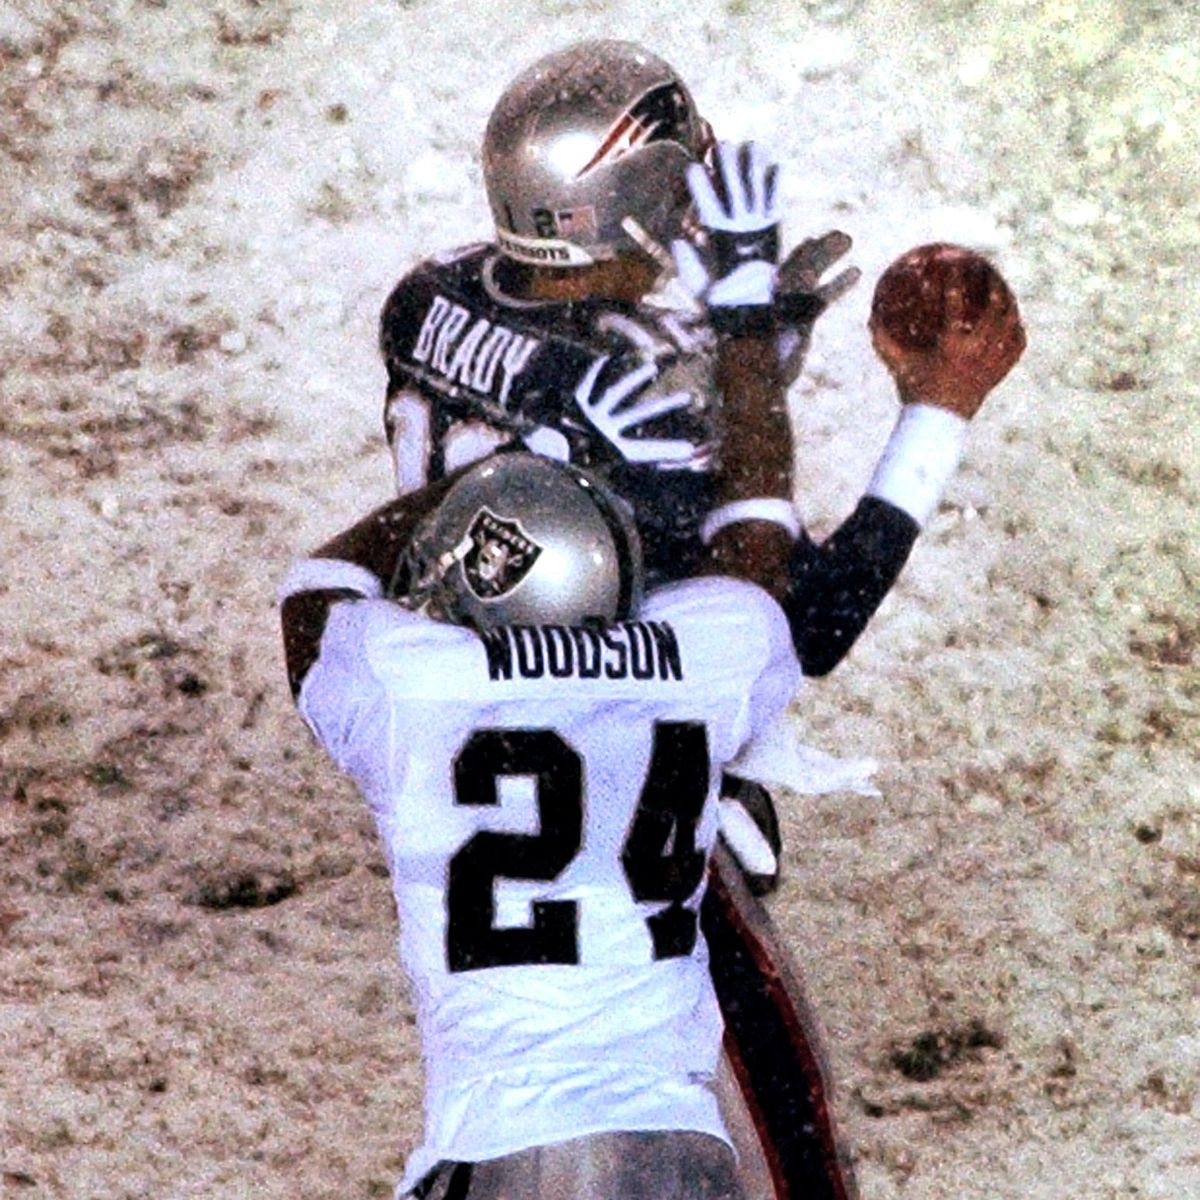 Raiders defensive back Charles Woodson makes contact with Brady to initiate the fateful play (Matthew J. Lee/The Boston Globe via GettyImages)